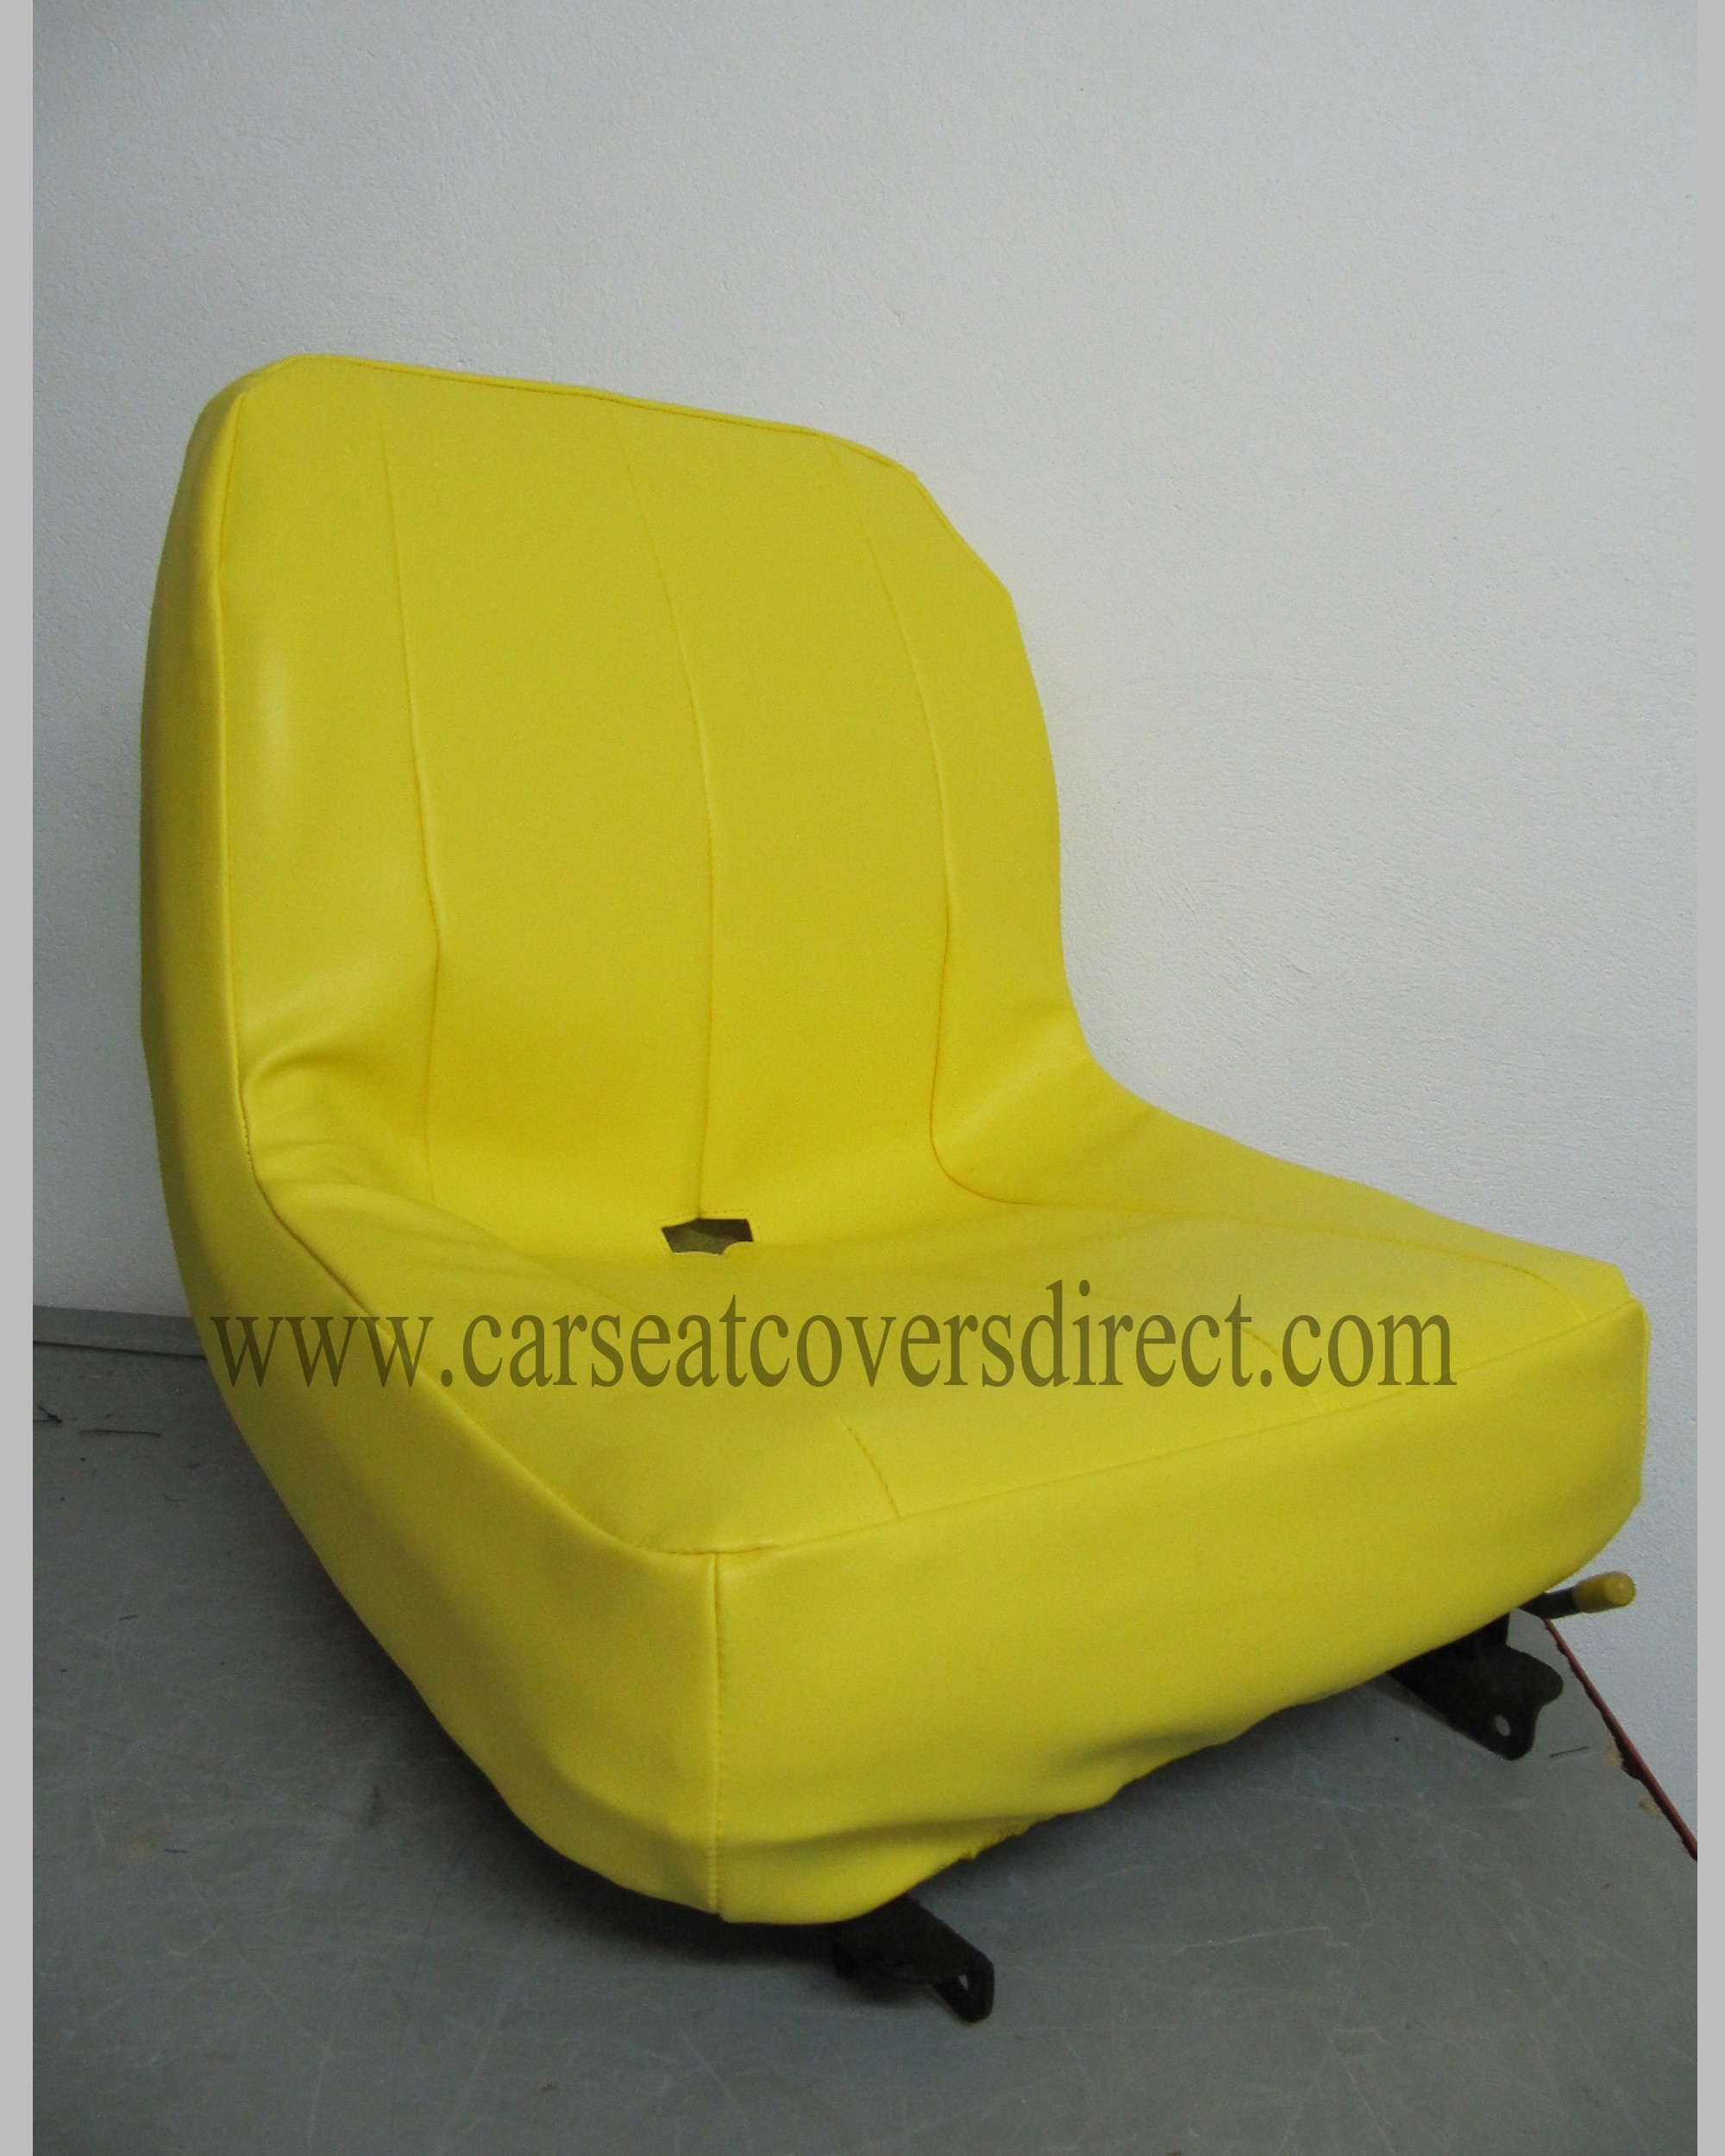 Custom John Deer lawnmower seat cover